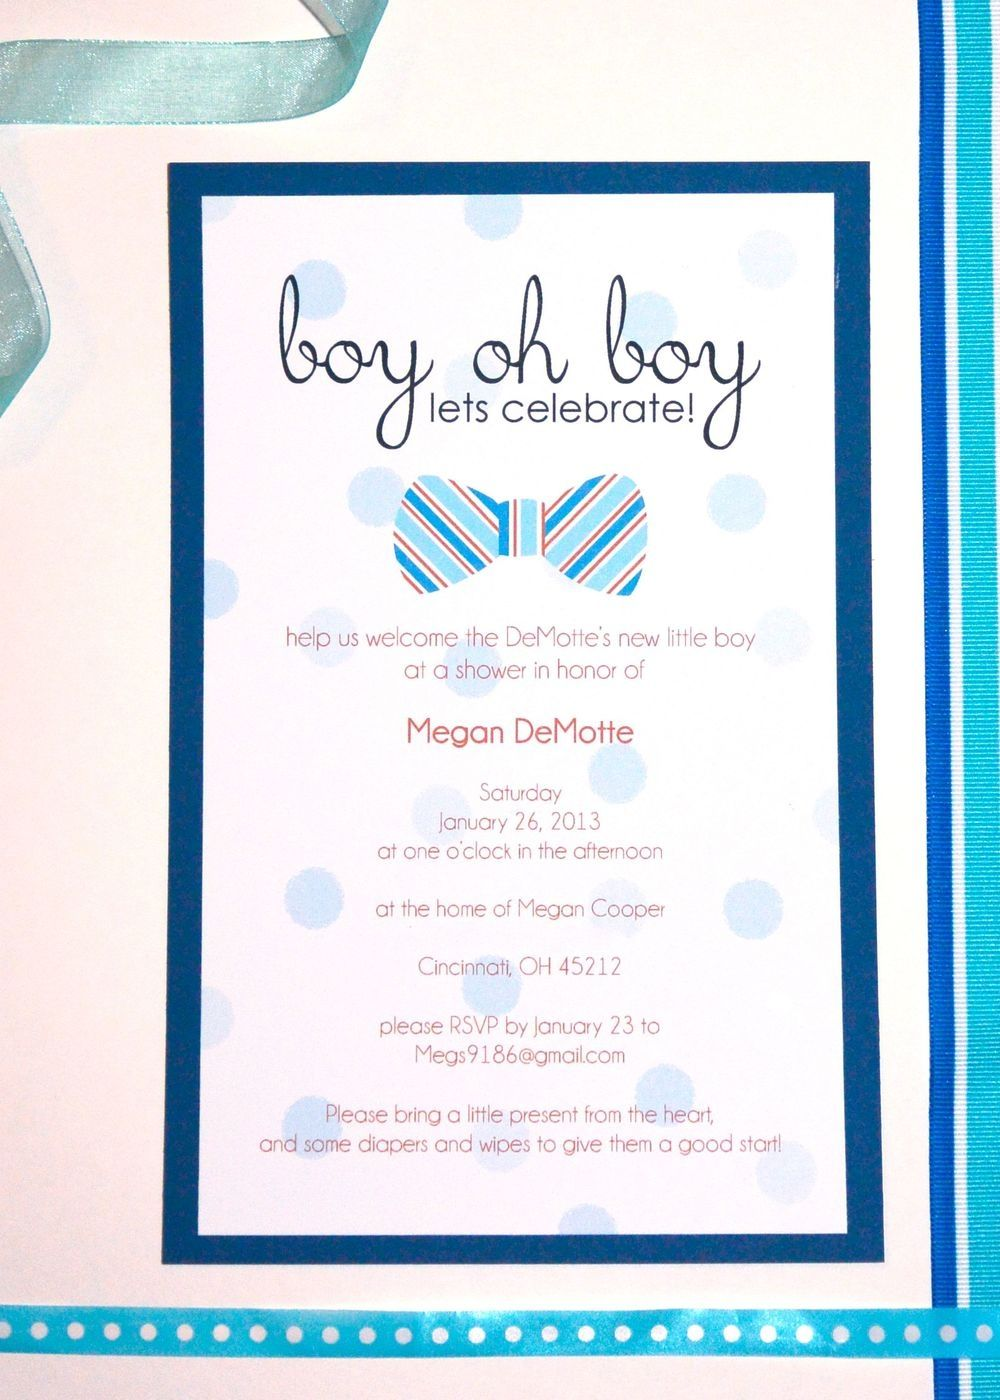 Work baby shower email invitations httpatwebryfo pinterest work baby shower email invitations filmwisefo